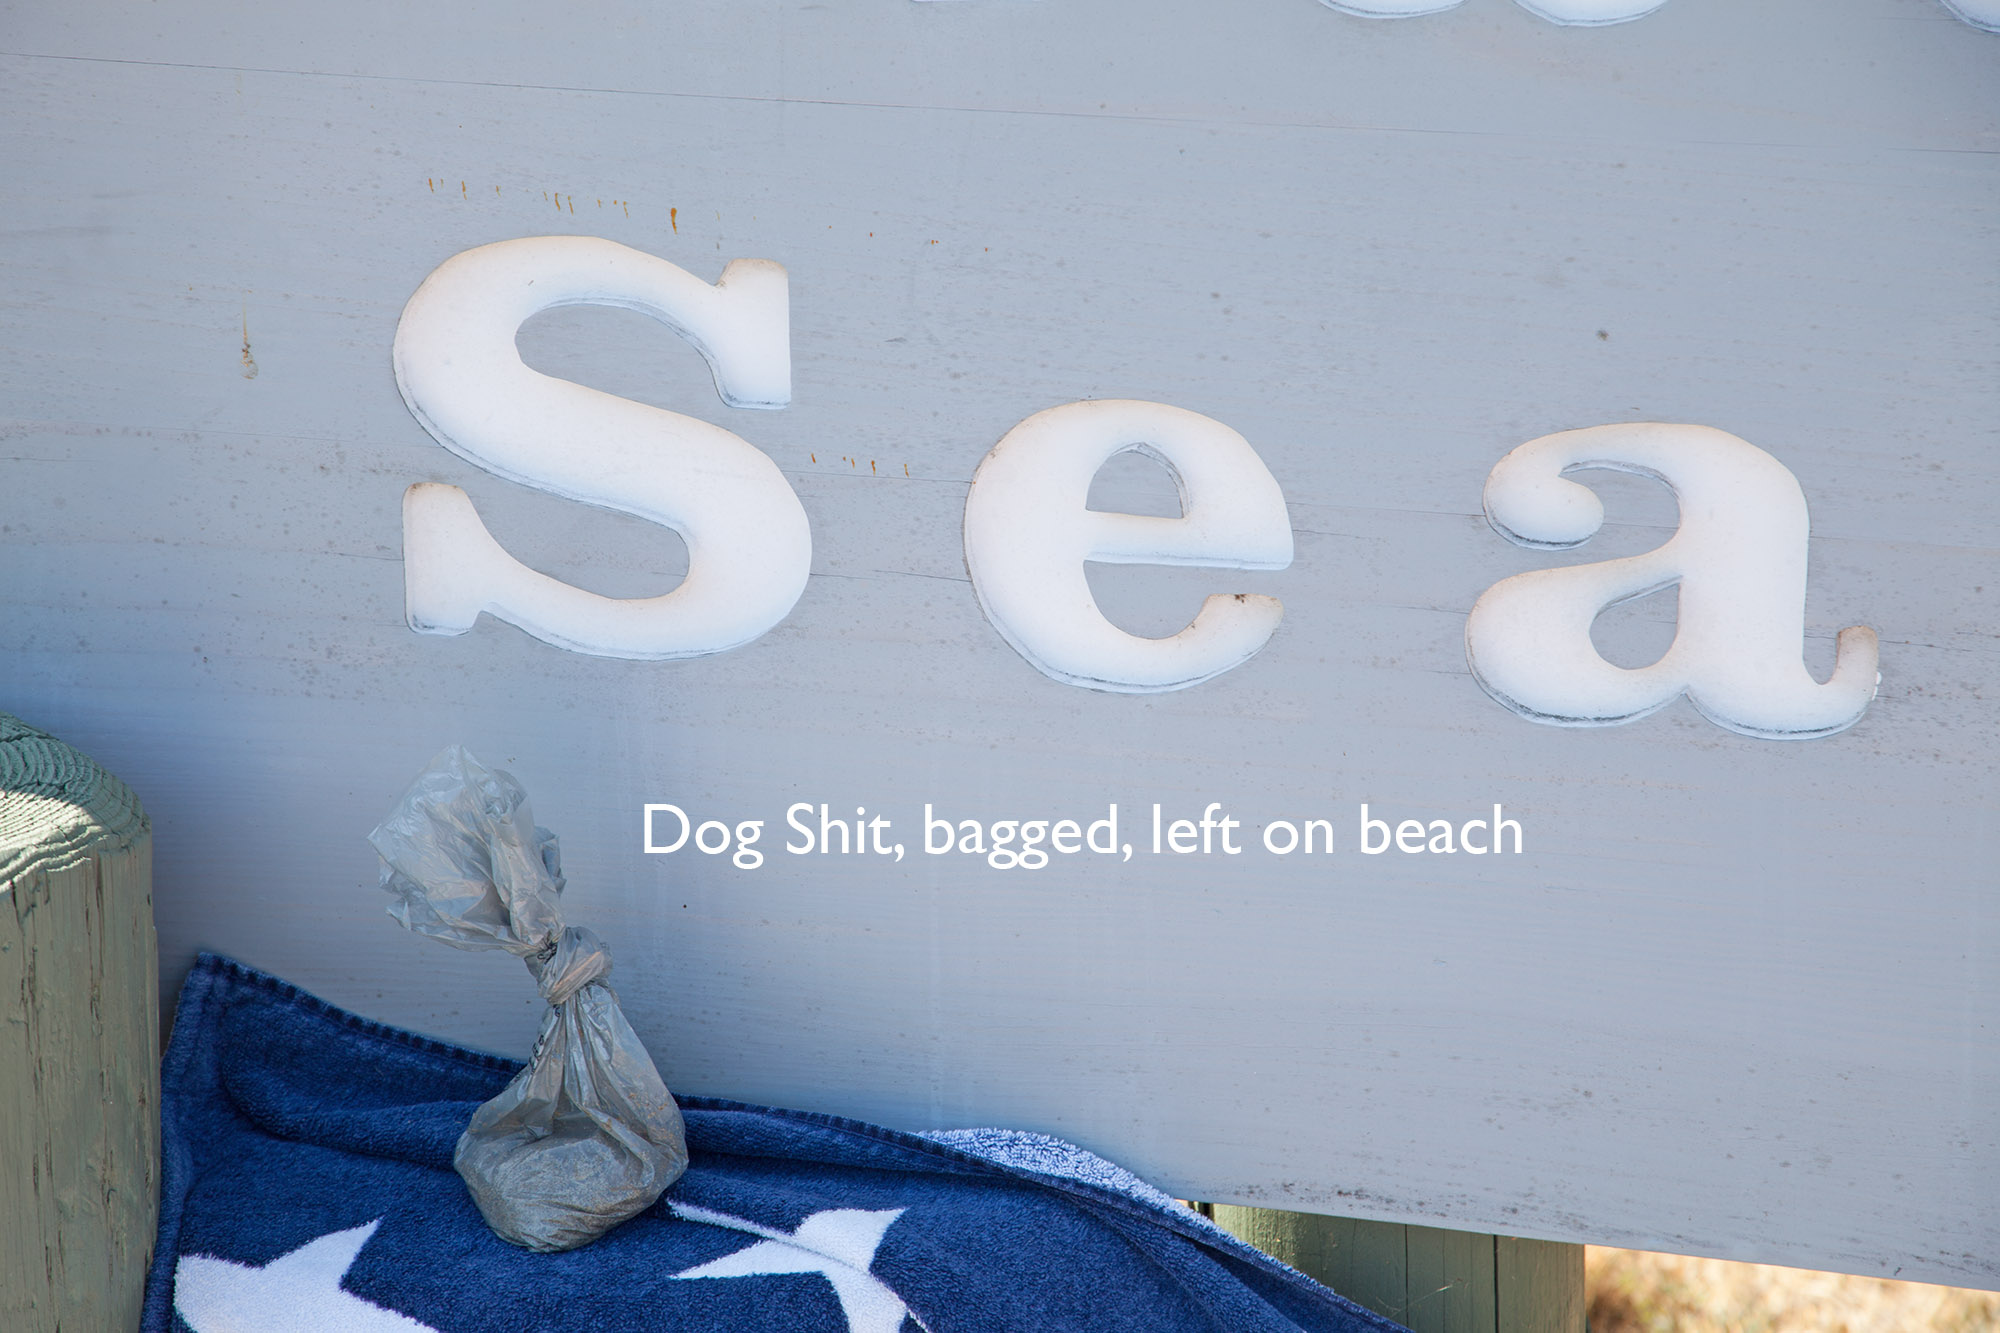 Dog shit, bagged by dog owner, left on beach for the rest of us to enjoy.